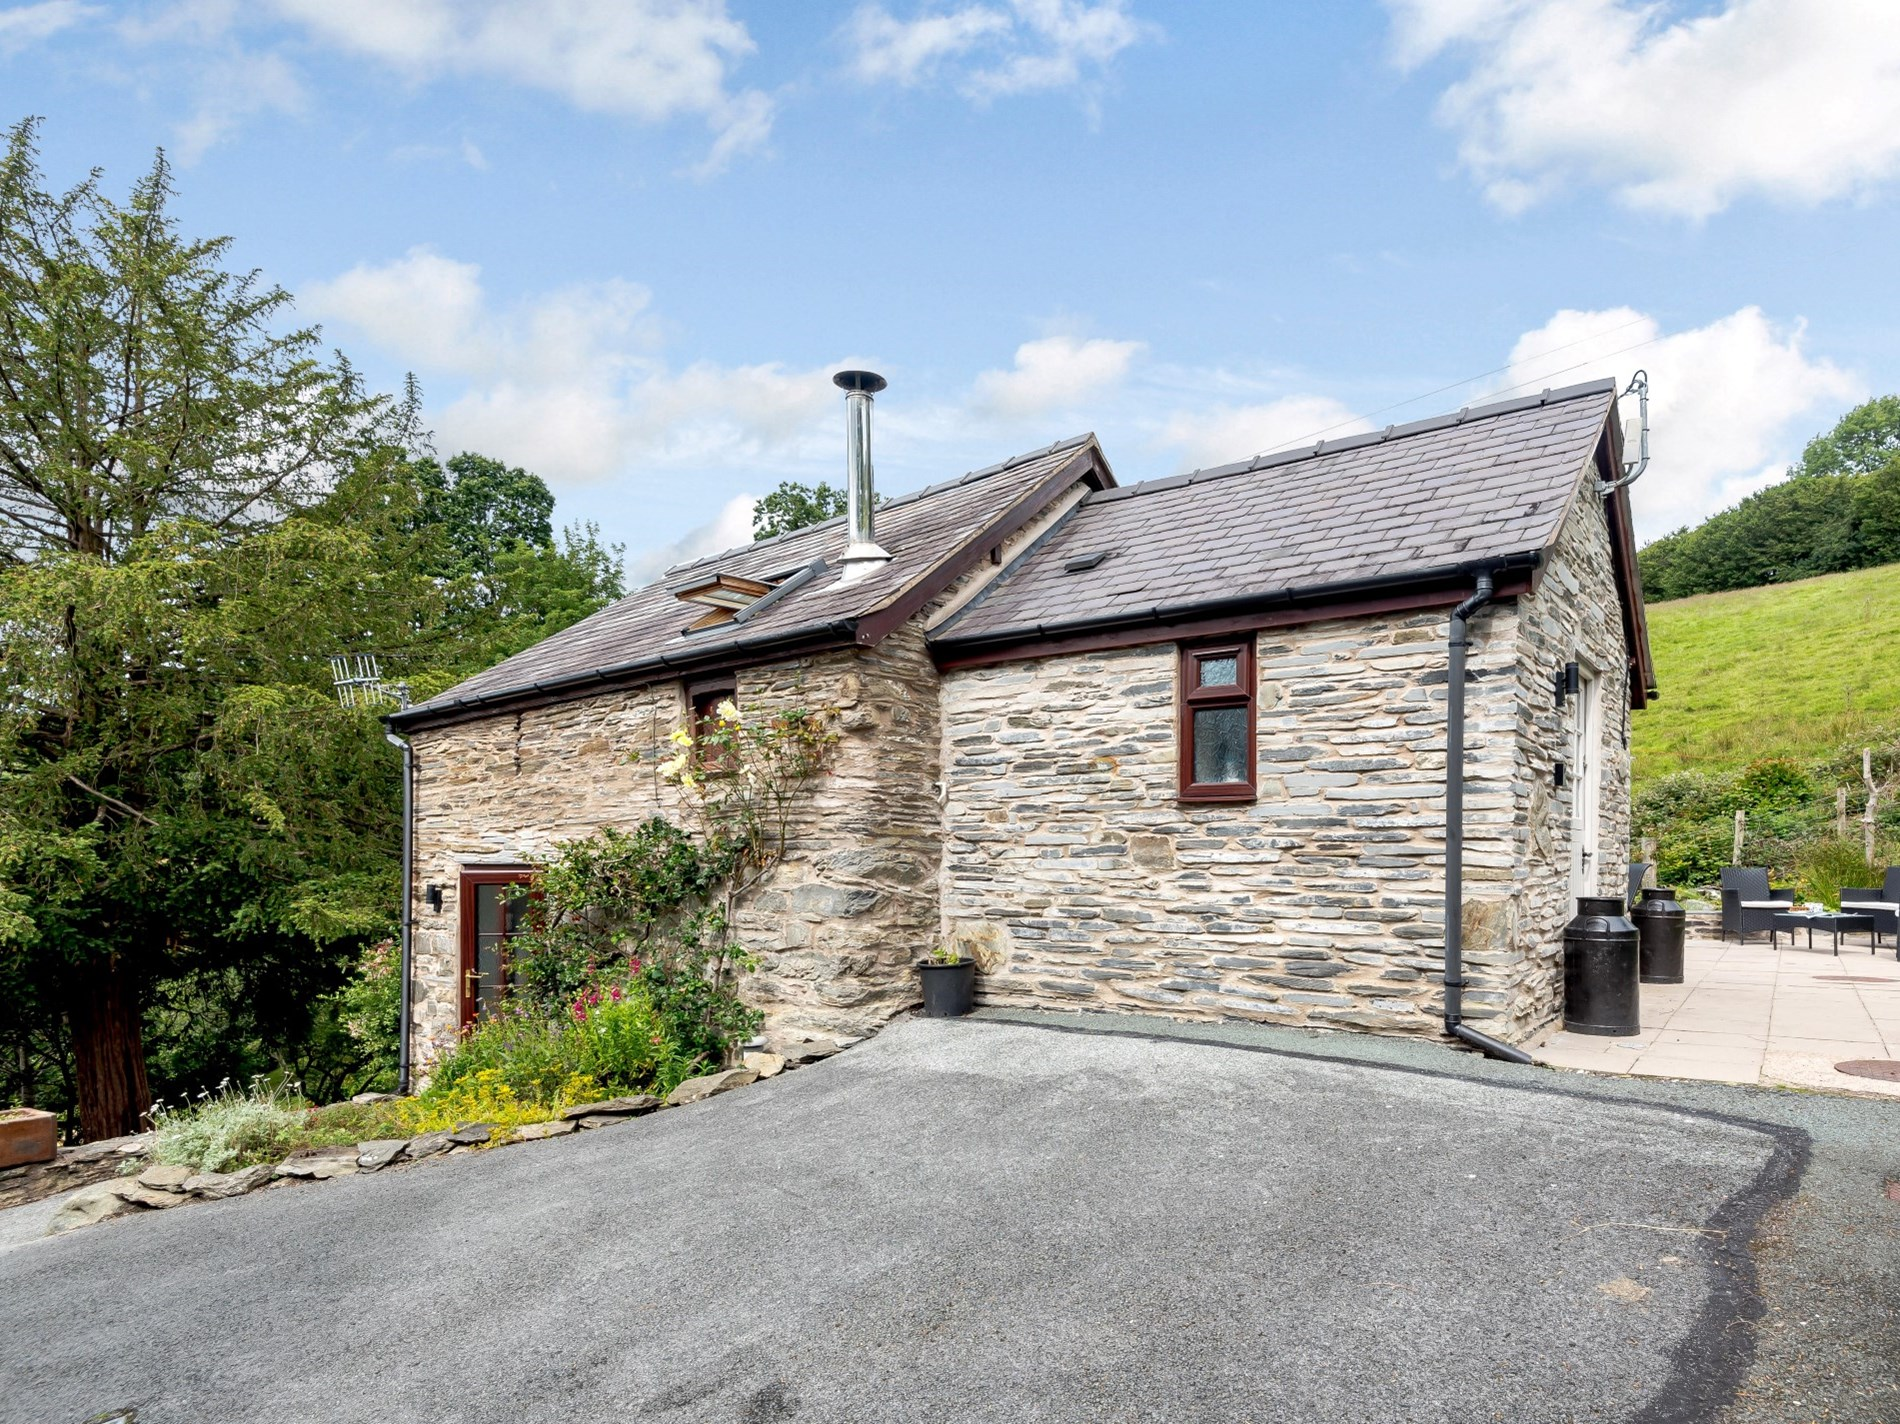 1 Bedroom Cottage in Llangollen, Snowdonia and North Wales